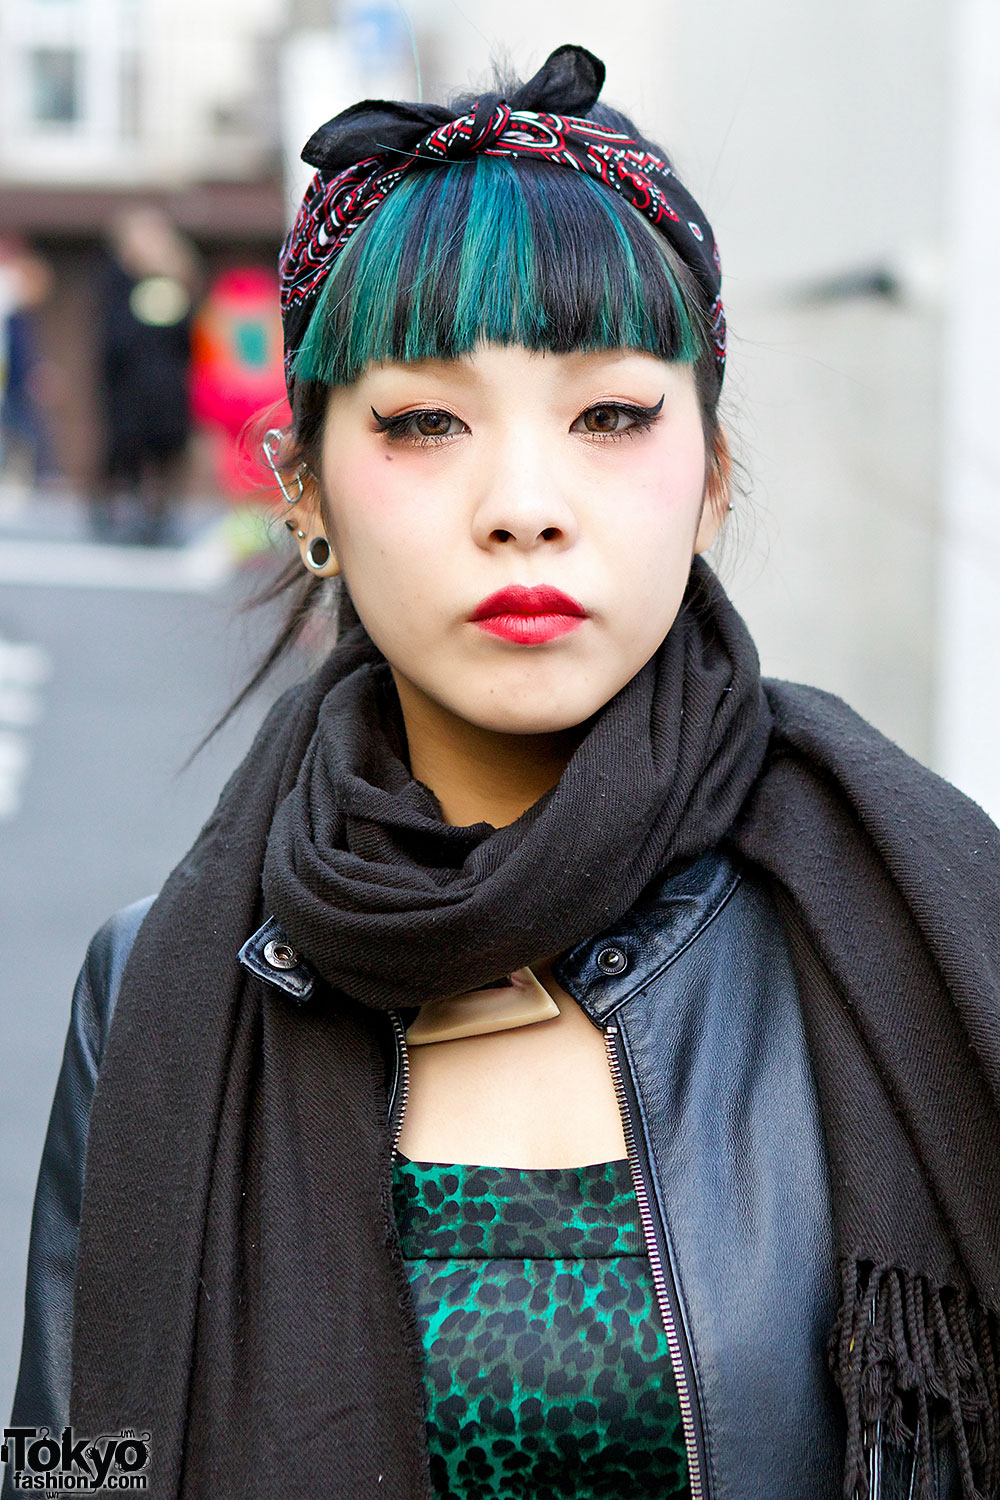 green hair eyespikes bag gauged ear amp demonia boots in